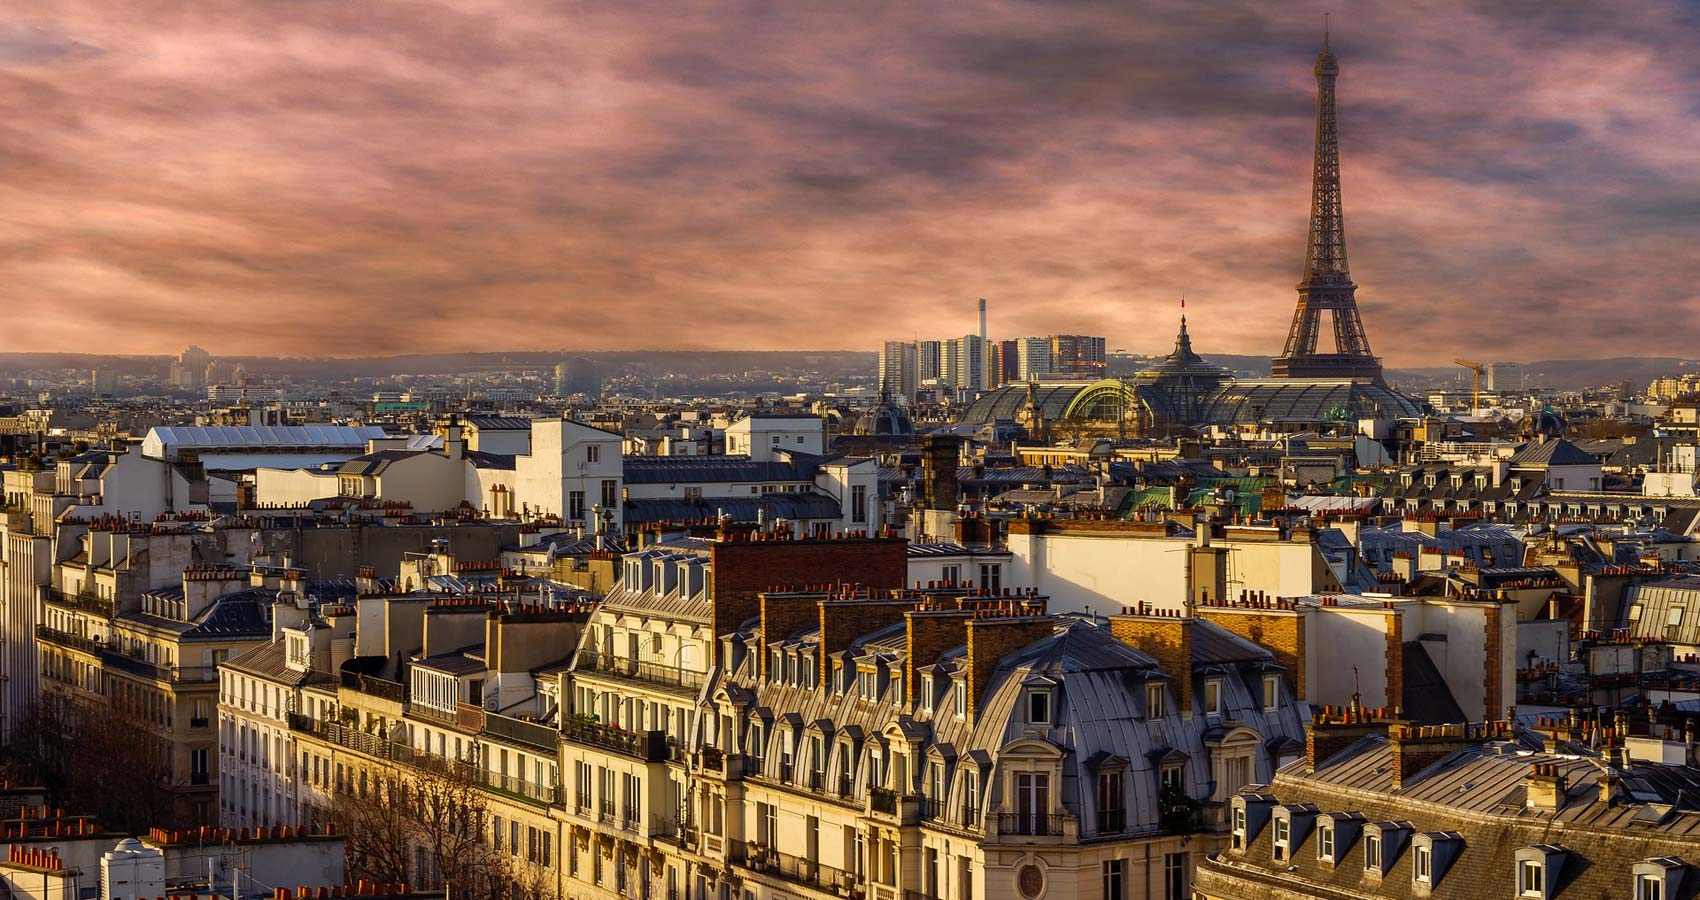 Parisian Streets and the French Connection, prose by Bhavya Prabhakar at Spillwords.com